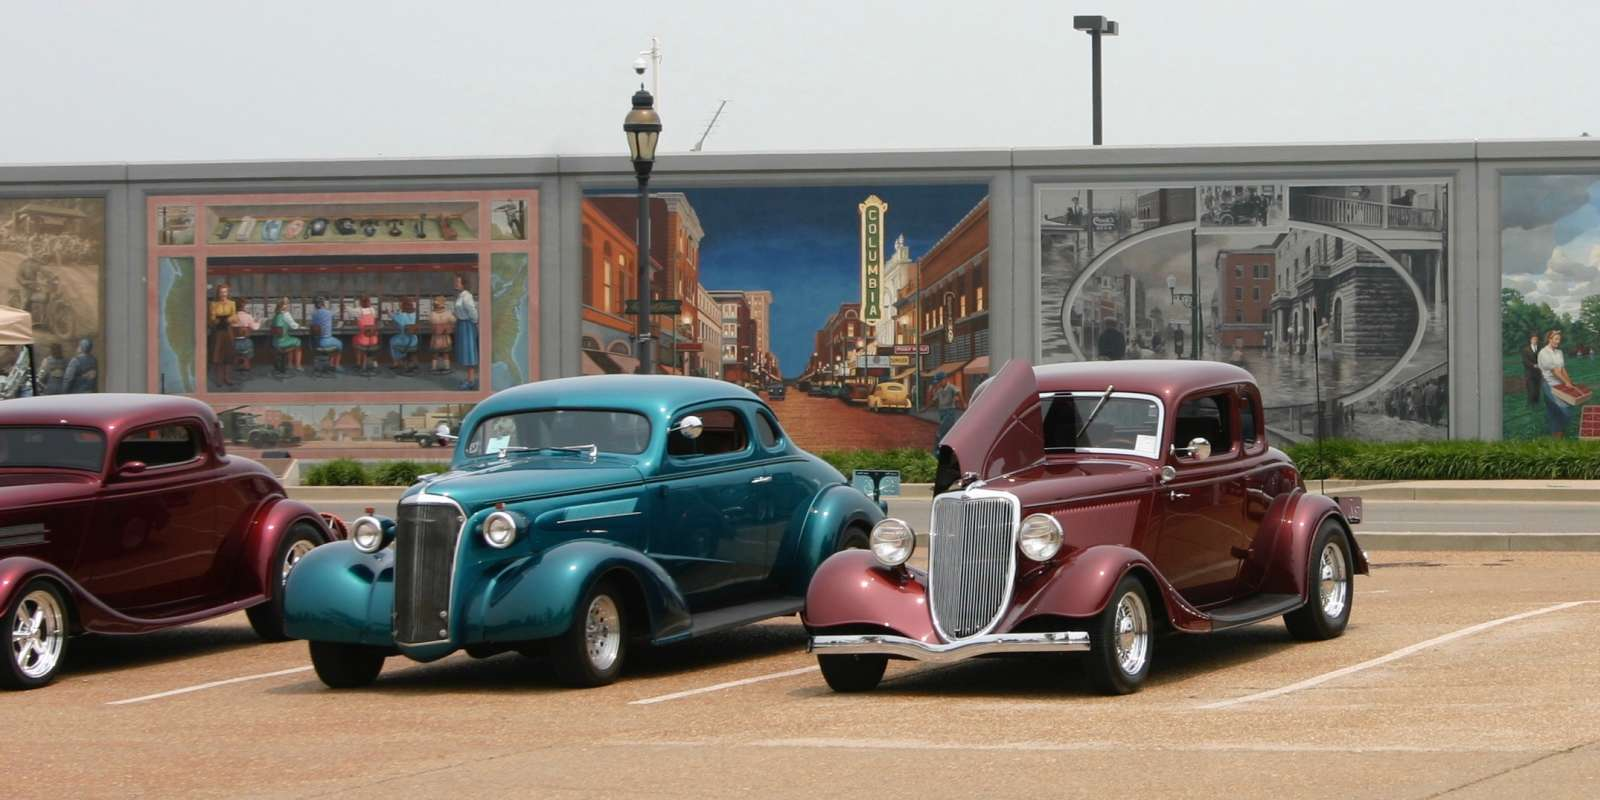 Paducah Riverfront Rod Run